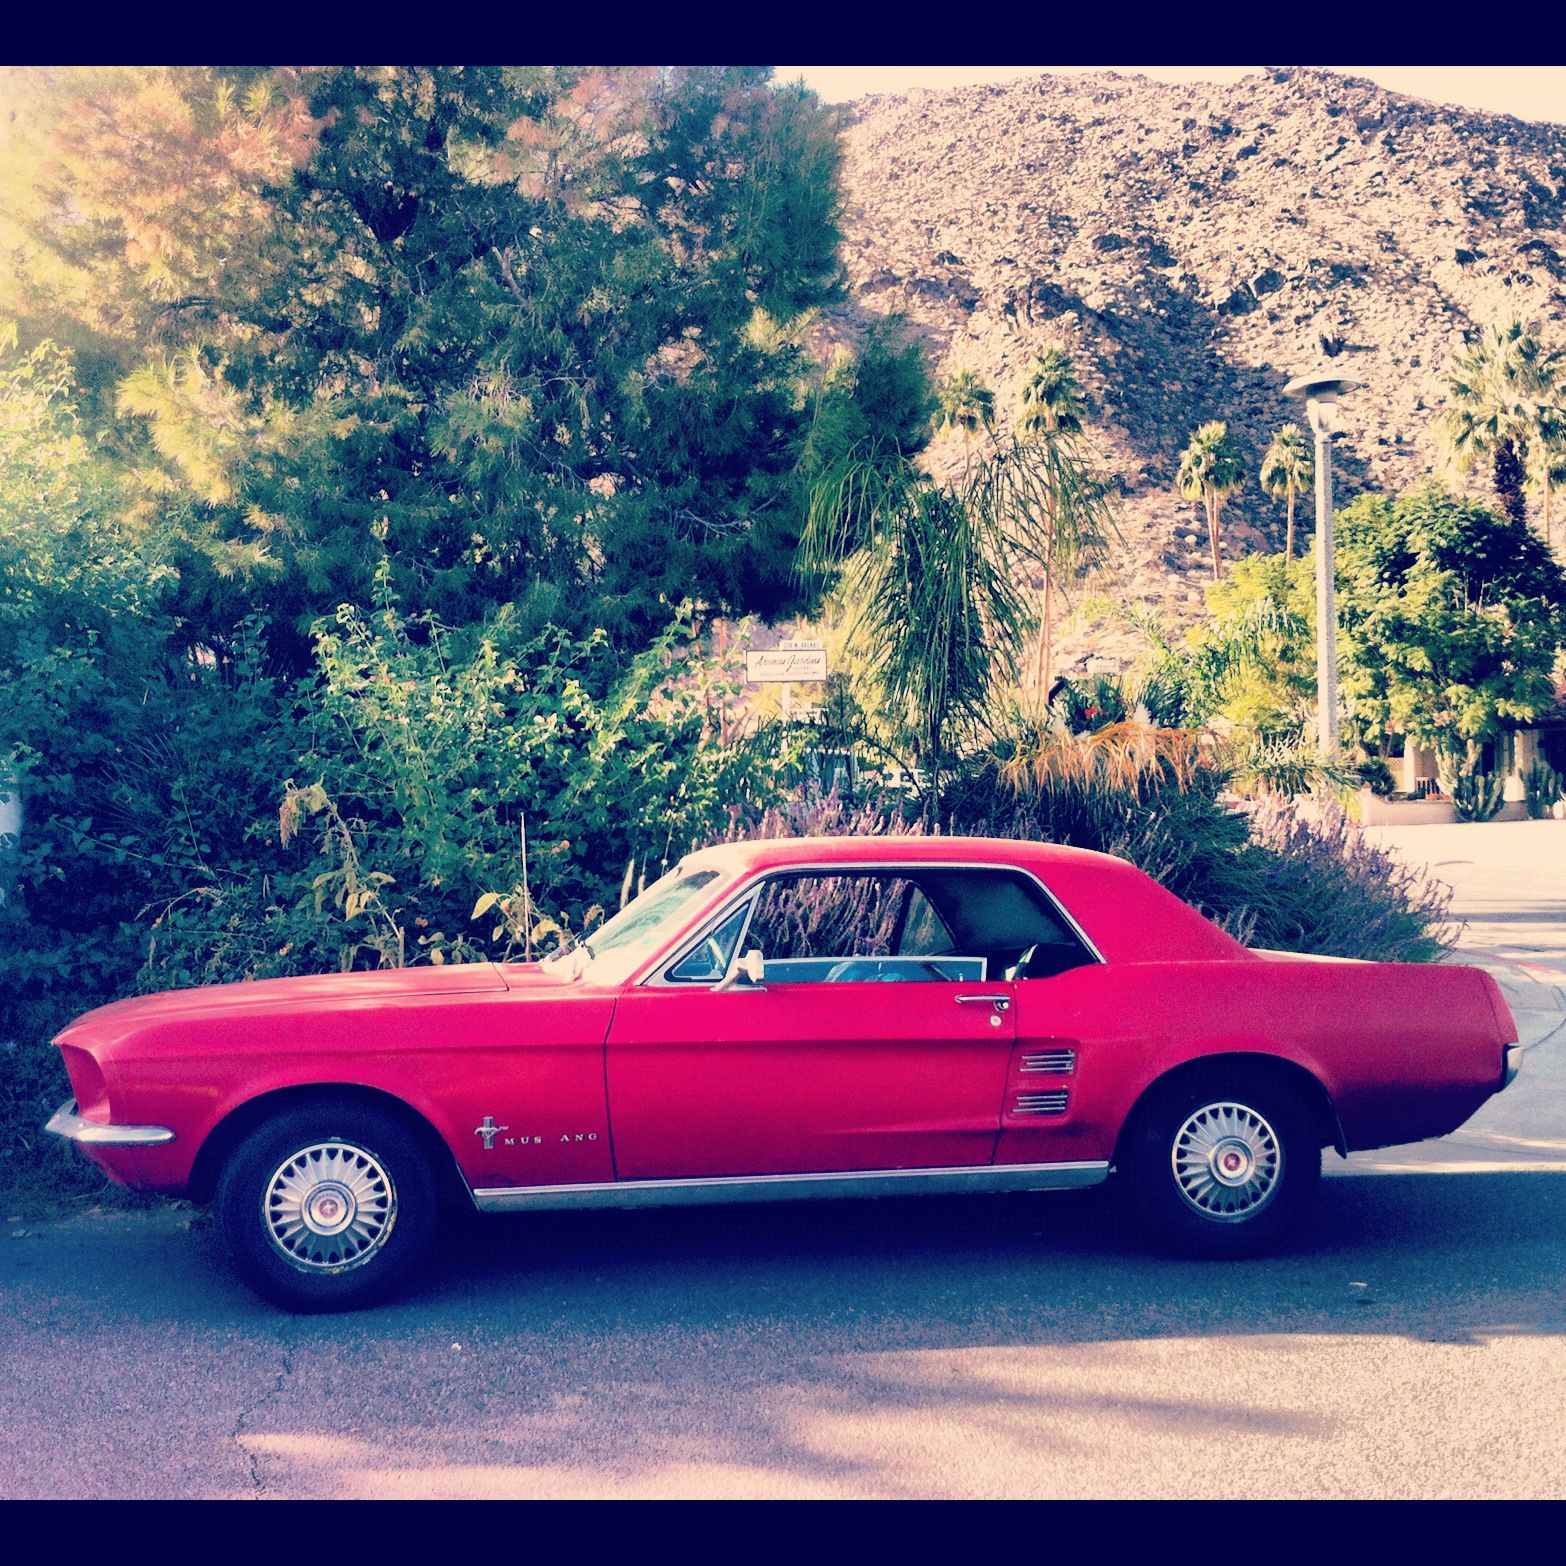 Cars In Palm Springs